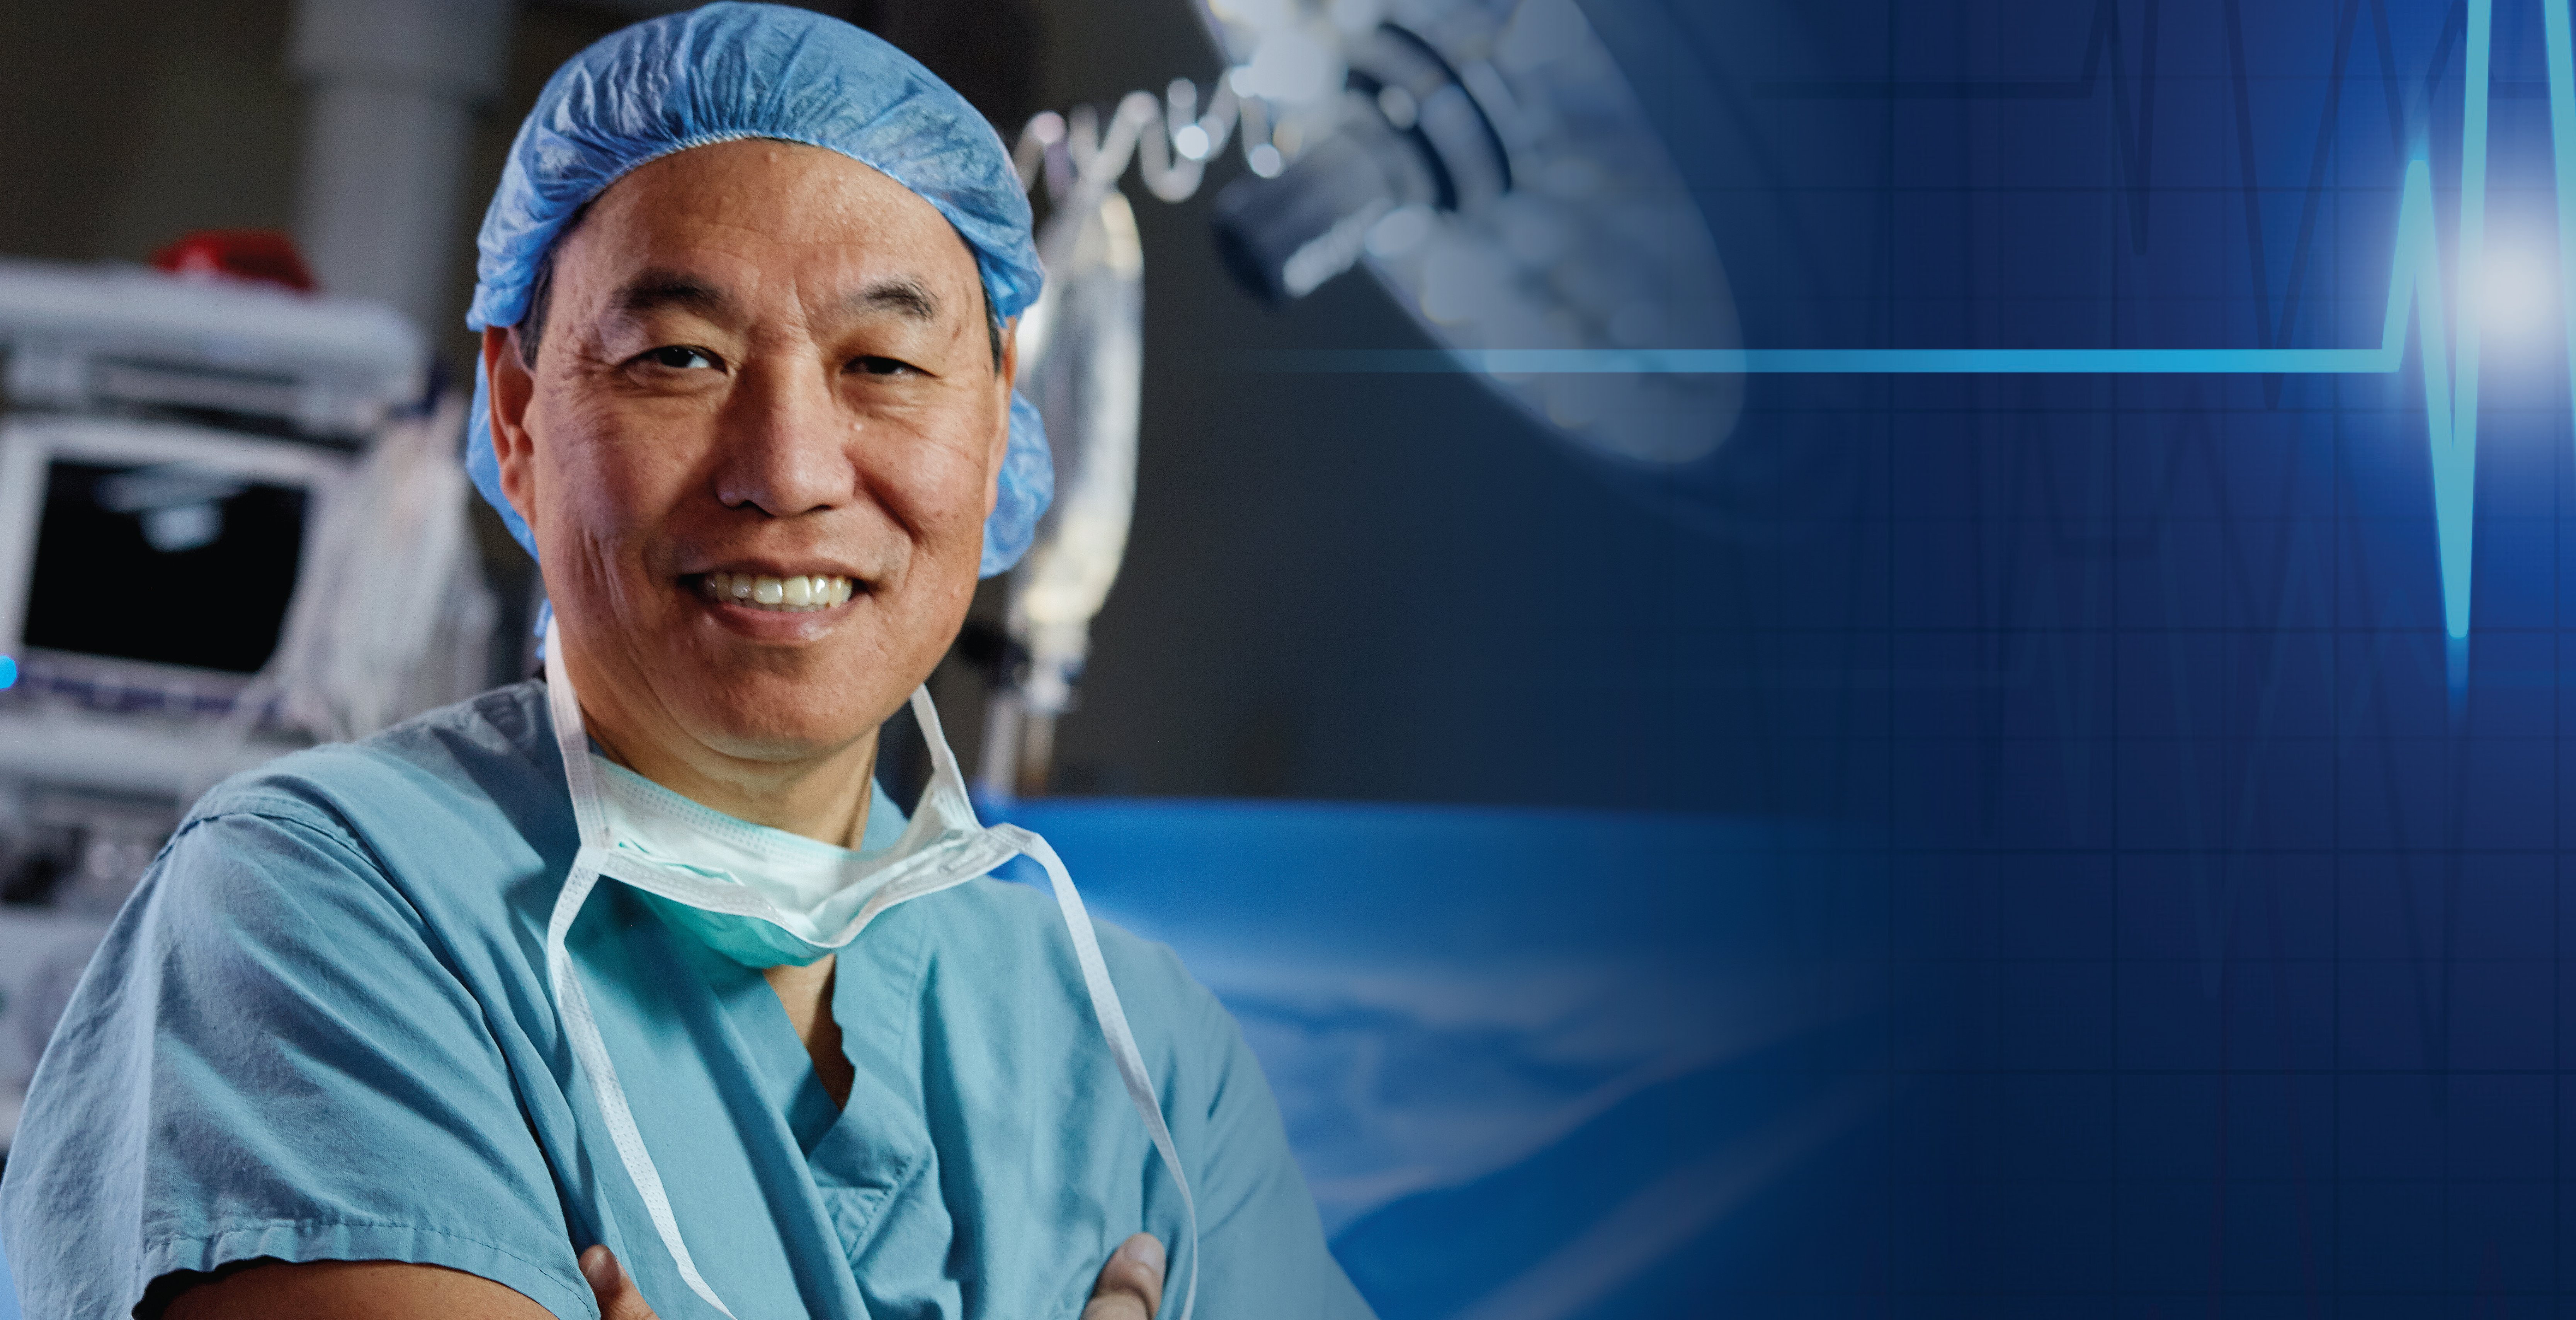 Dr. Lee in the Operating Room